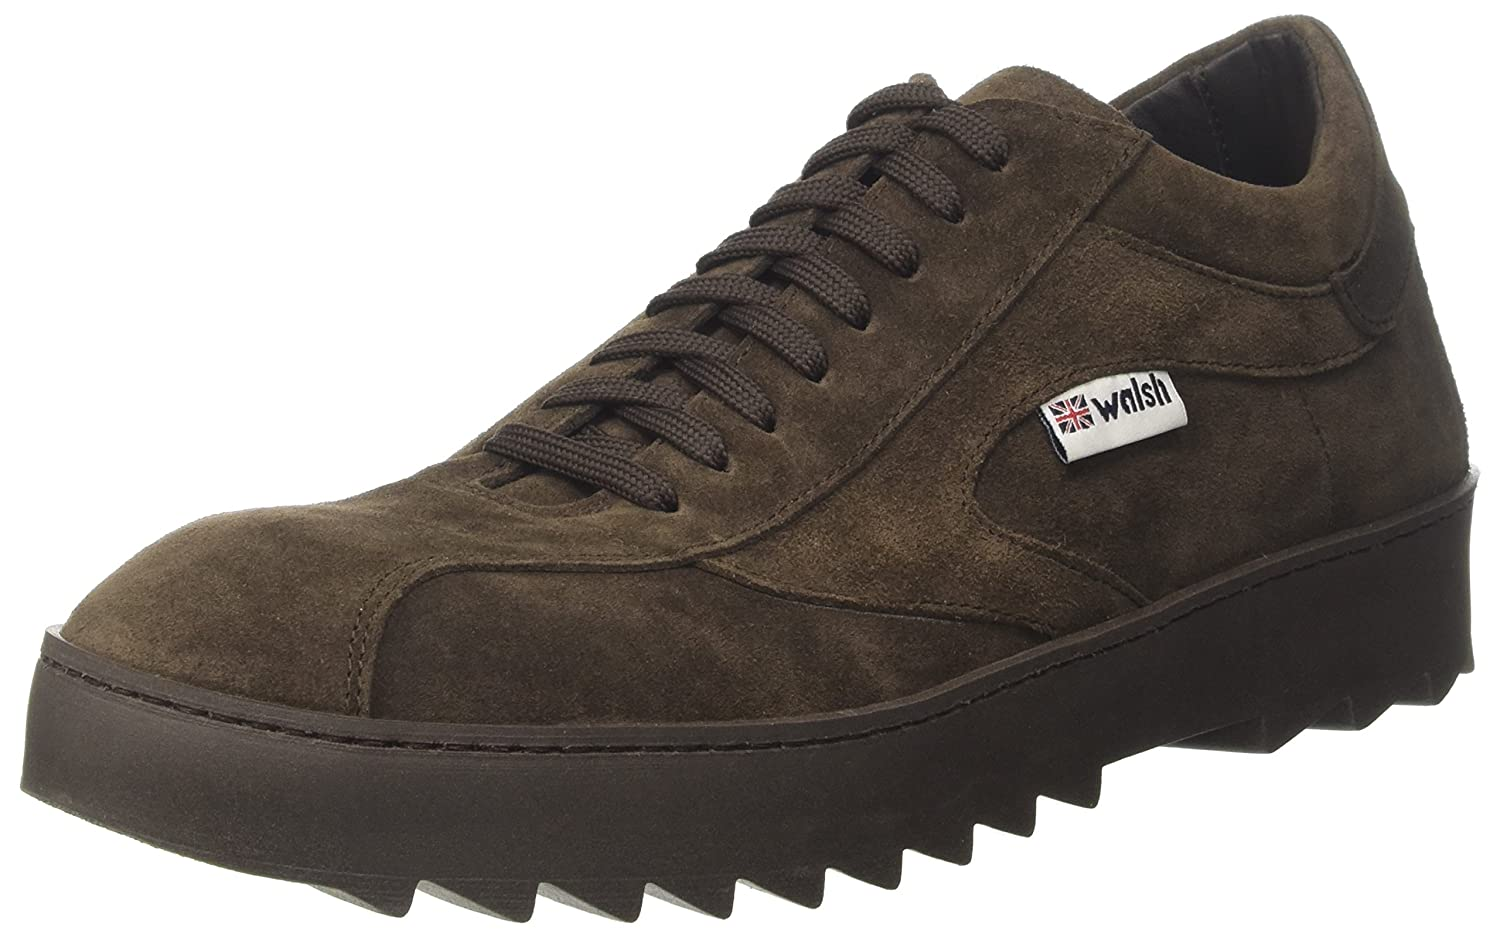 Walsh Herren Midstyle Wrapper Sole Turnschuhe